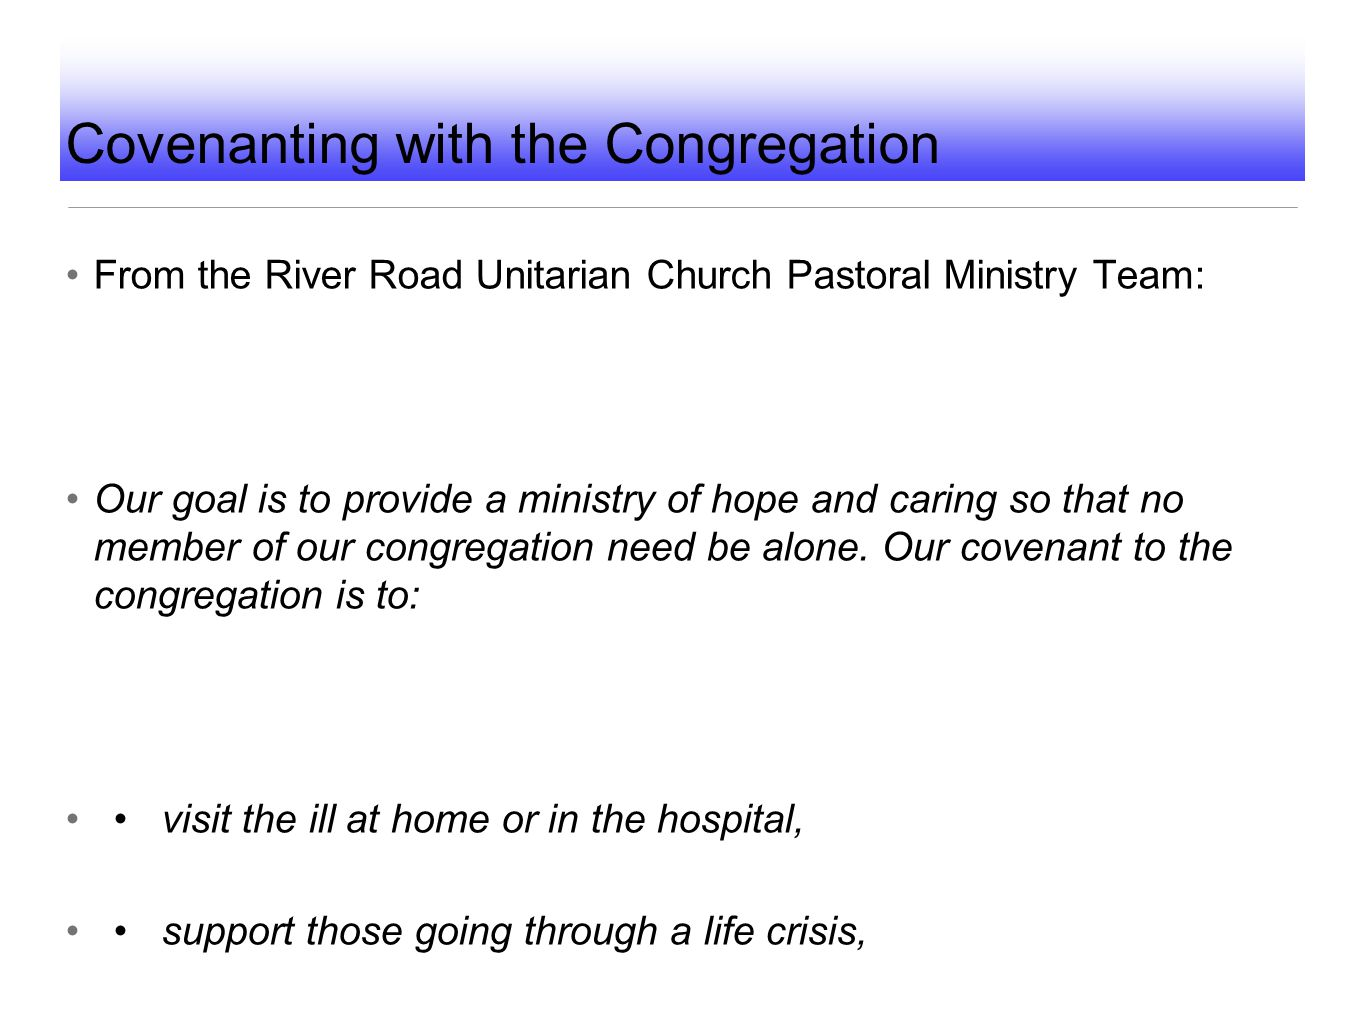 Covenanting with the Congregation From the River Road Unitarian Church Pastoral Ministry Team: Our goal is to provide a ministry of hope and caring so